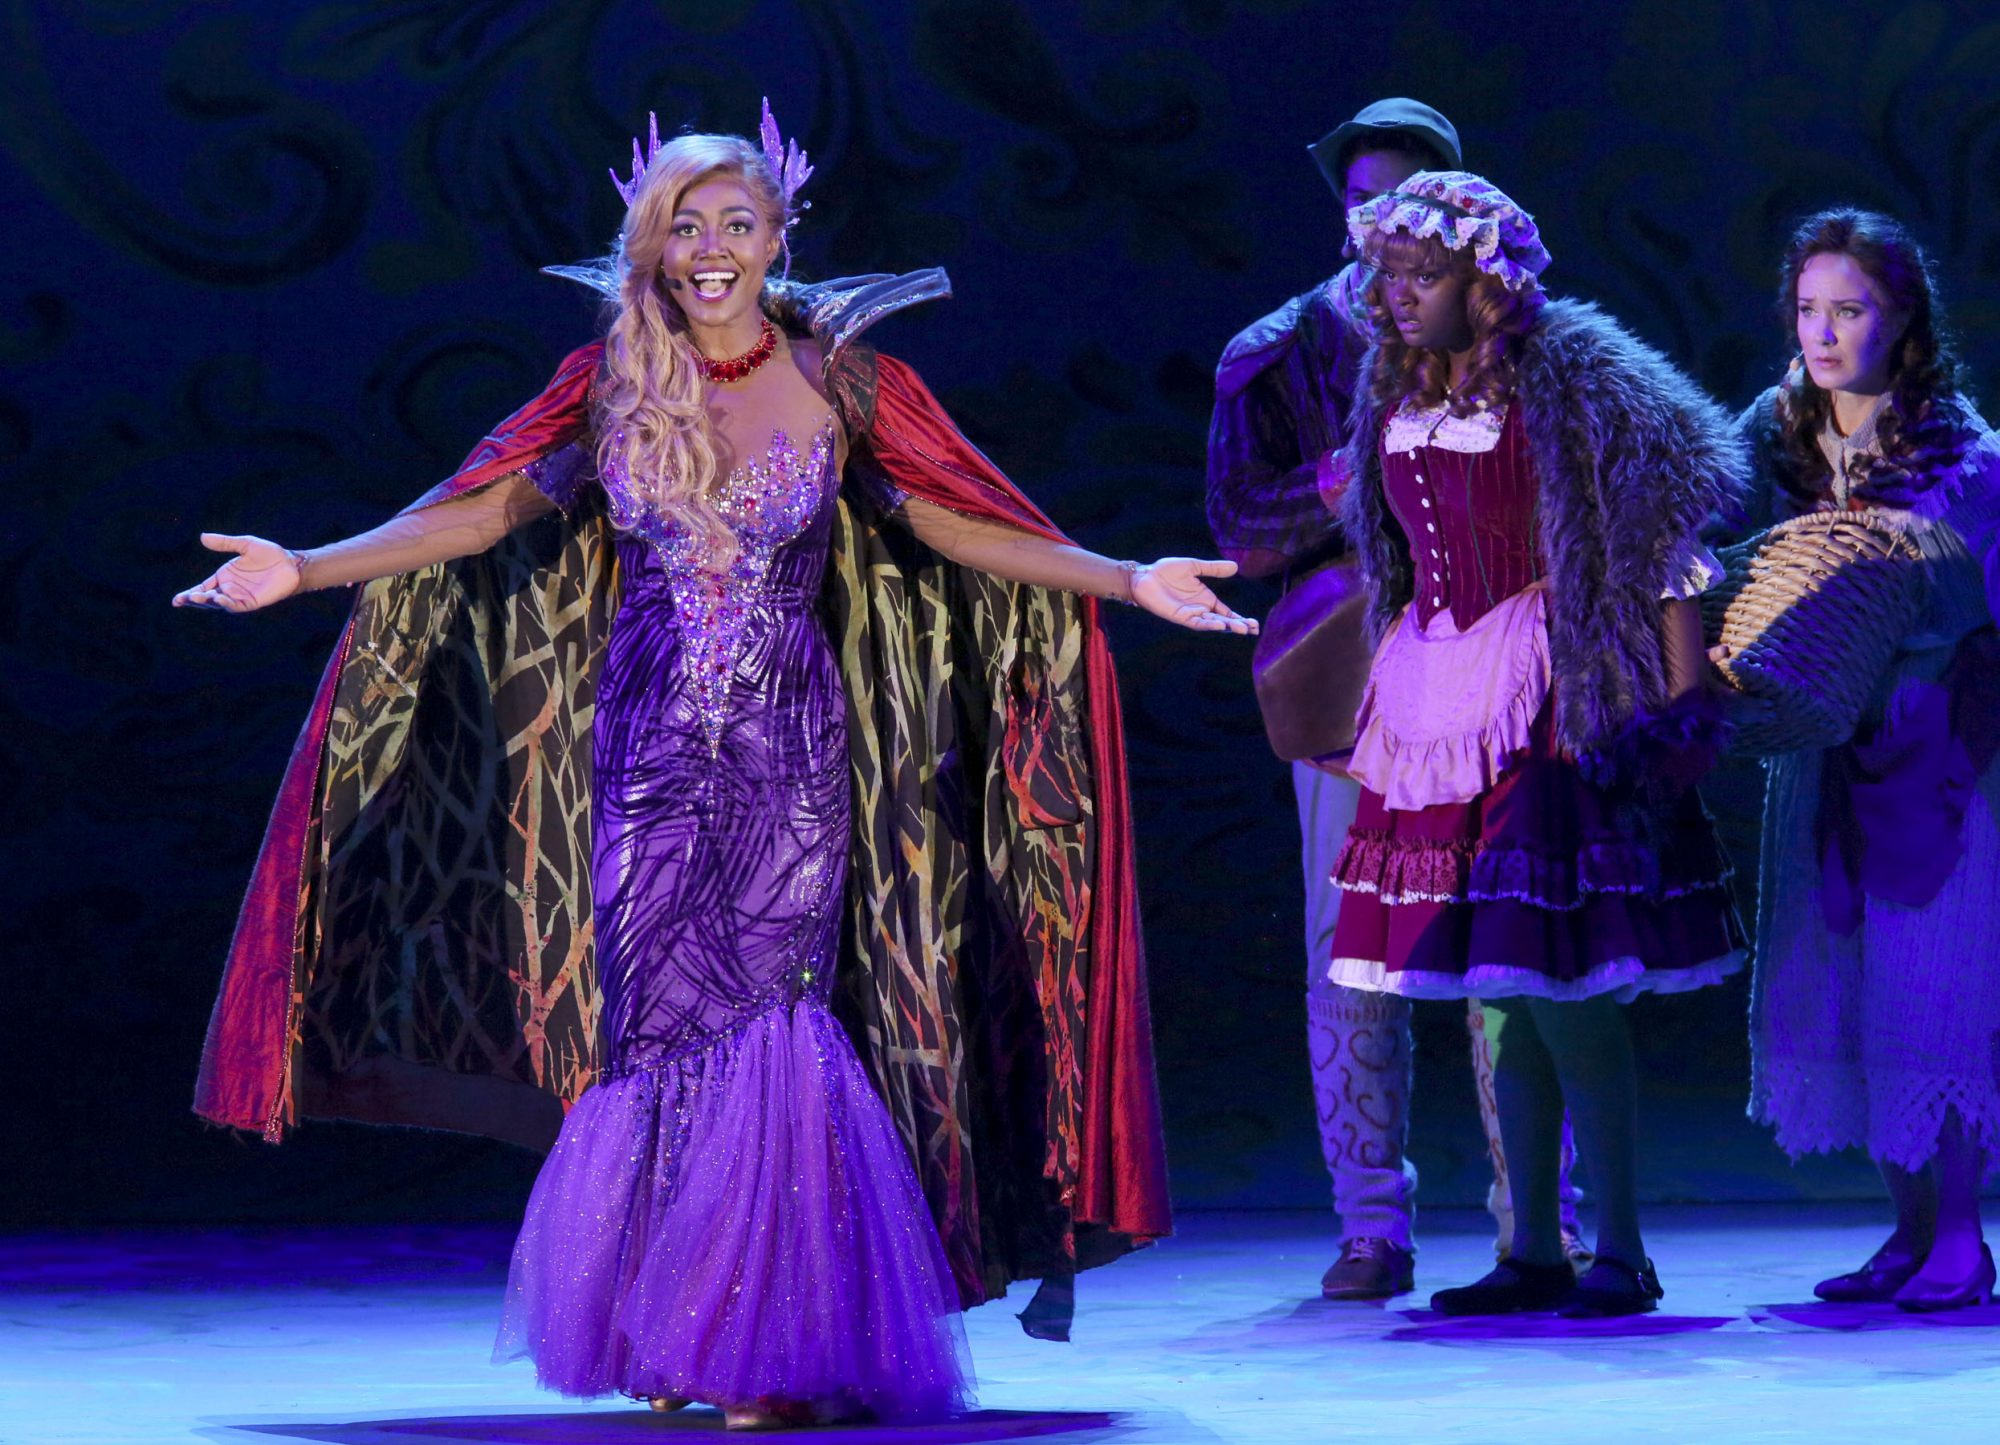 Hollywood Bowl Presents Into The Woods 2019 -- Pictured: Patina Miller as The Witch Photos by Craig T. Mathew and Greg Grudt/Mathew Imaging If these photos will be used on Social Media, please be sure to tag the following: @mathewimaging